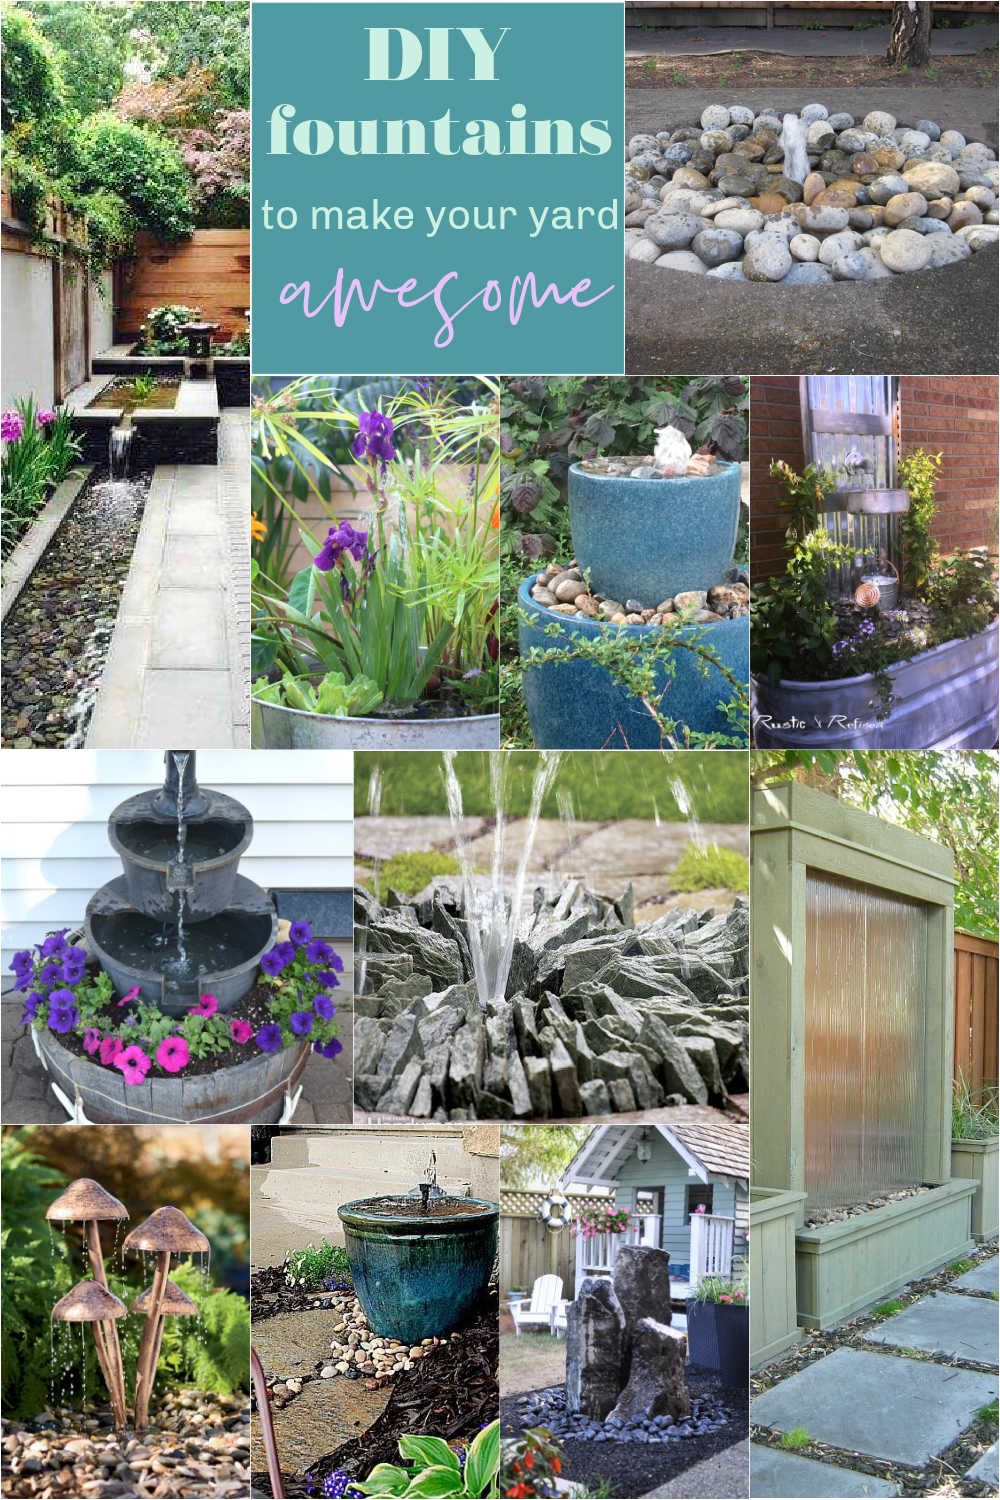 DIY Fountains to Make Your Yard Amazing! Bring your summer yard up a level by bringing the soothing sound of running water to your patio!